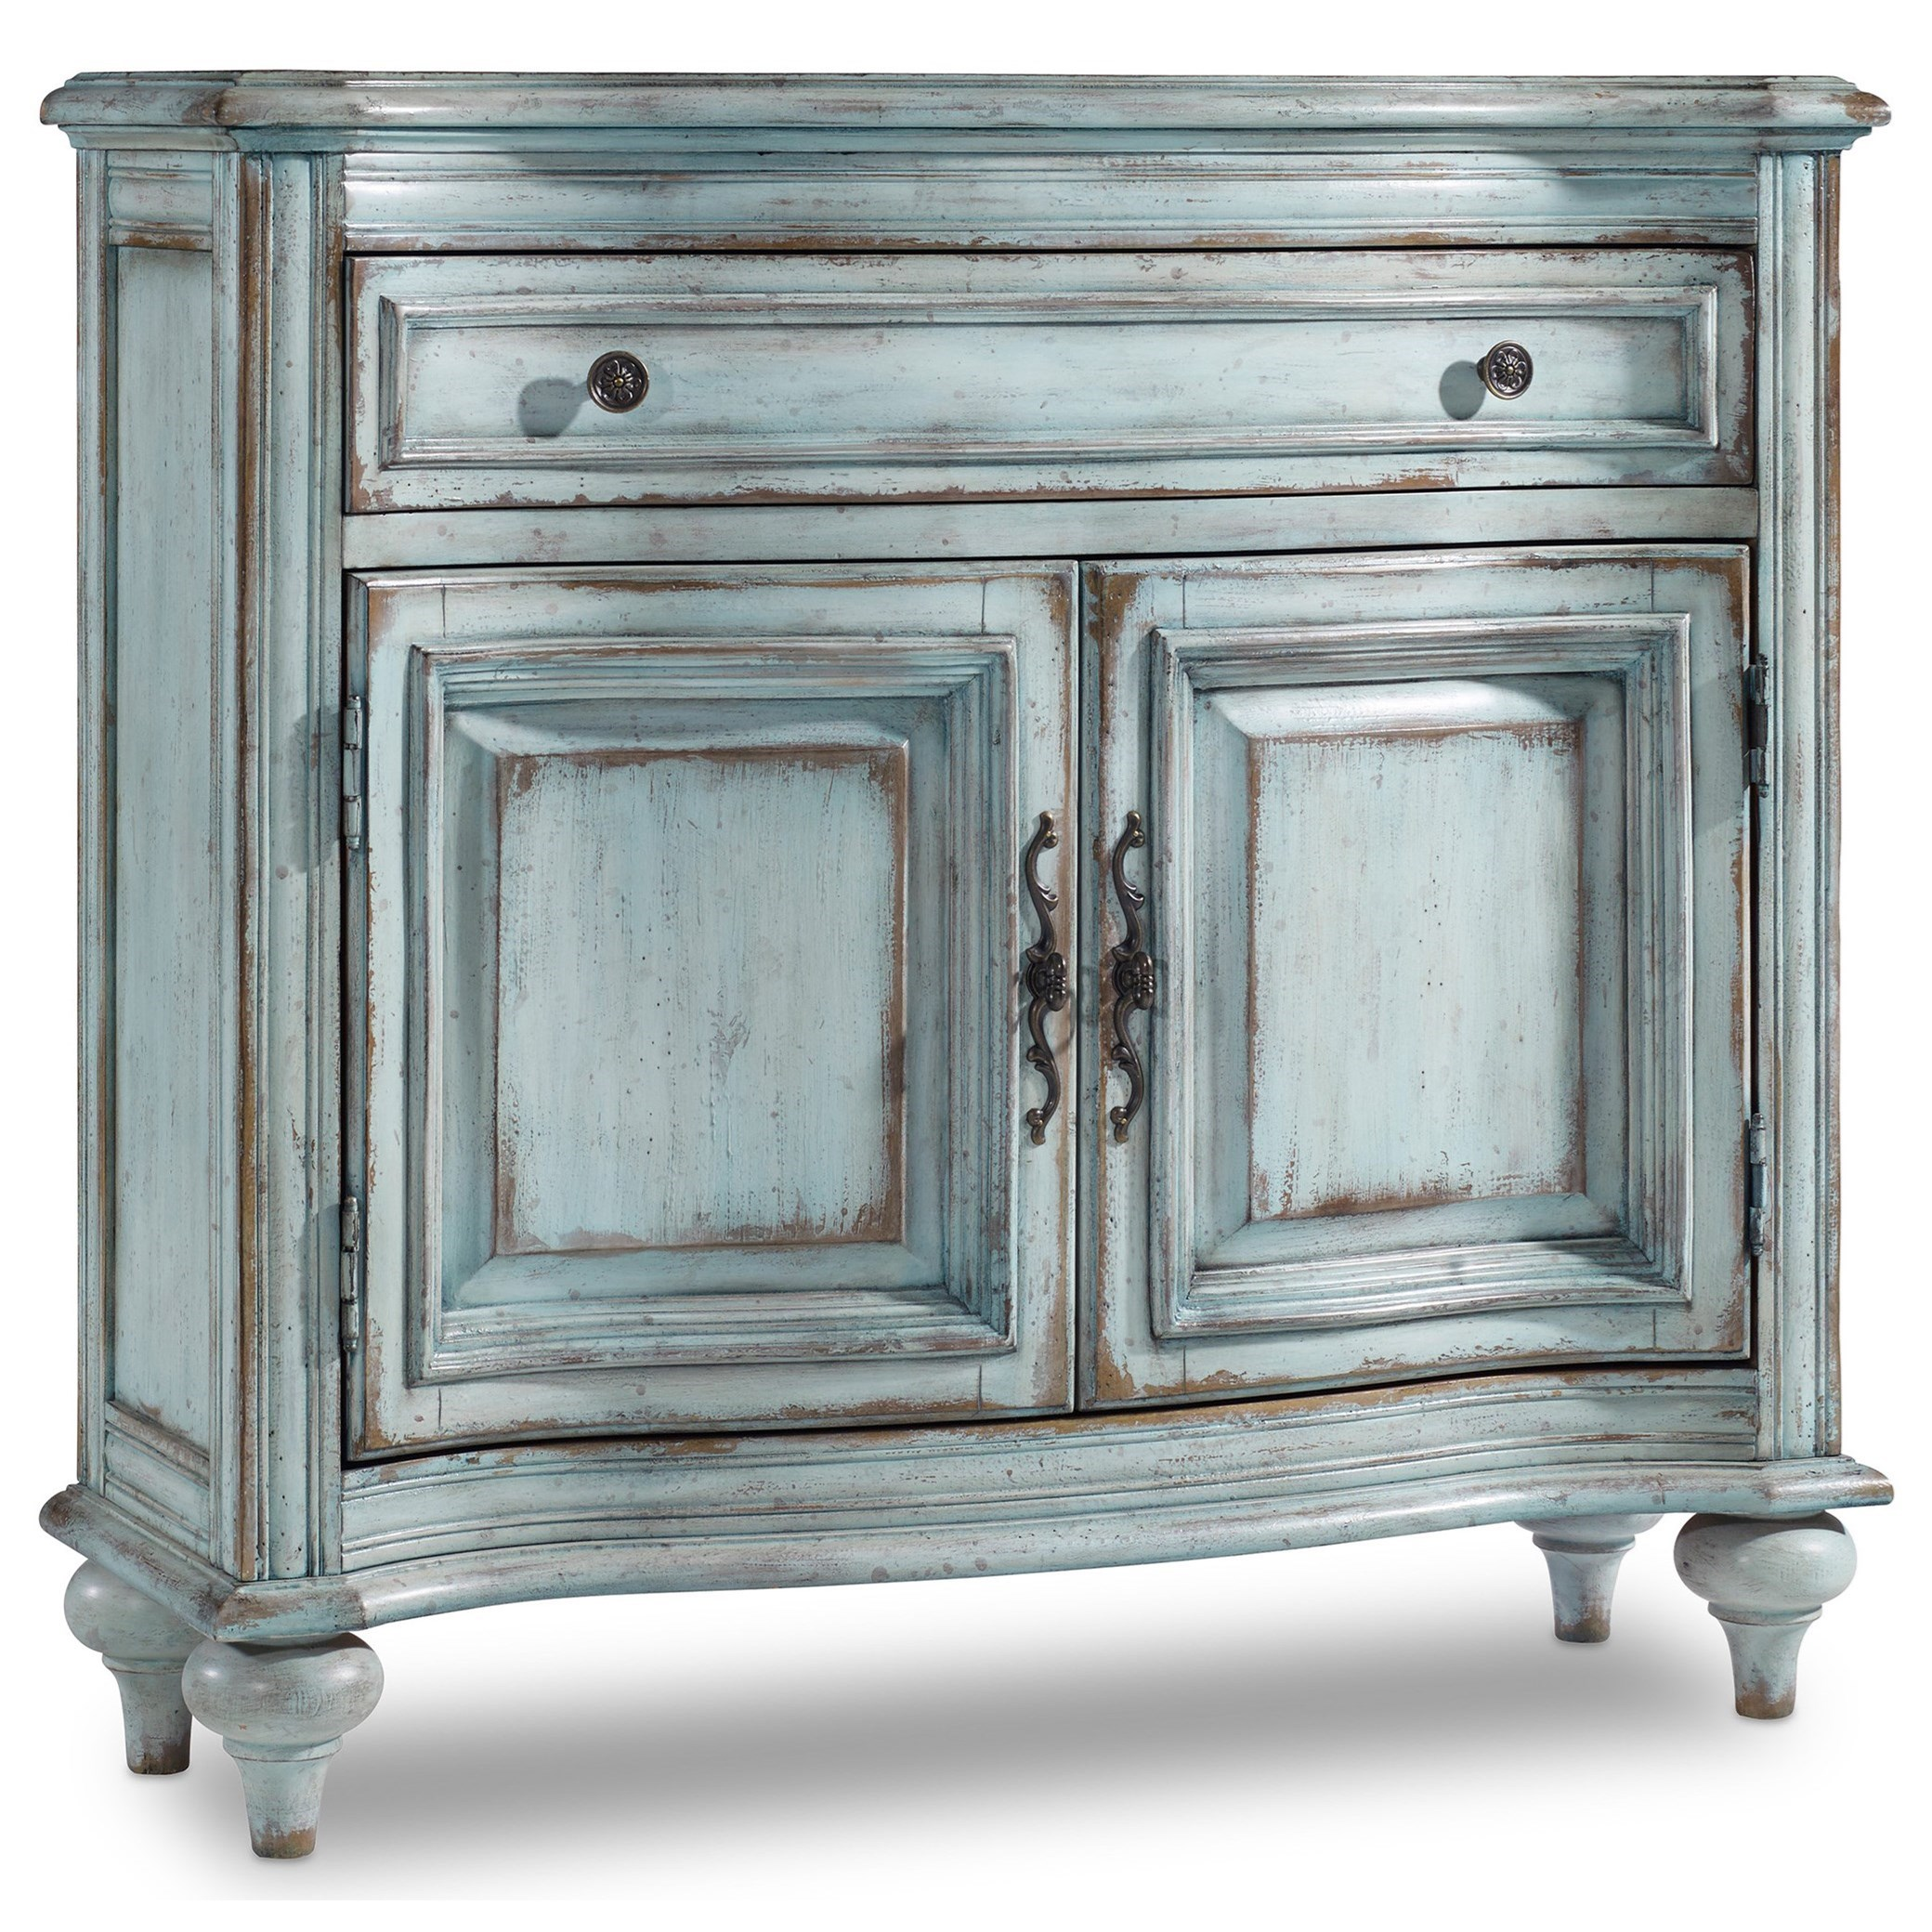 hooker furniture living room accents ltbe drawer door products color accent table with drawers and doors chest nautical light fixtures antique round hall kitchen pendant lights